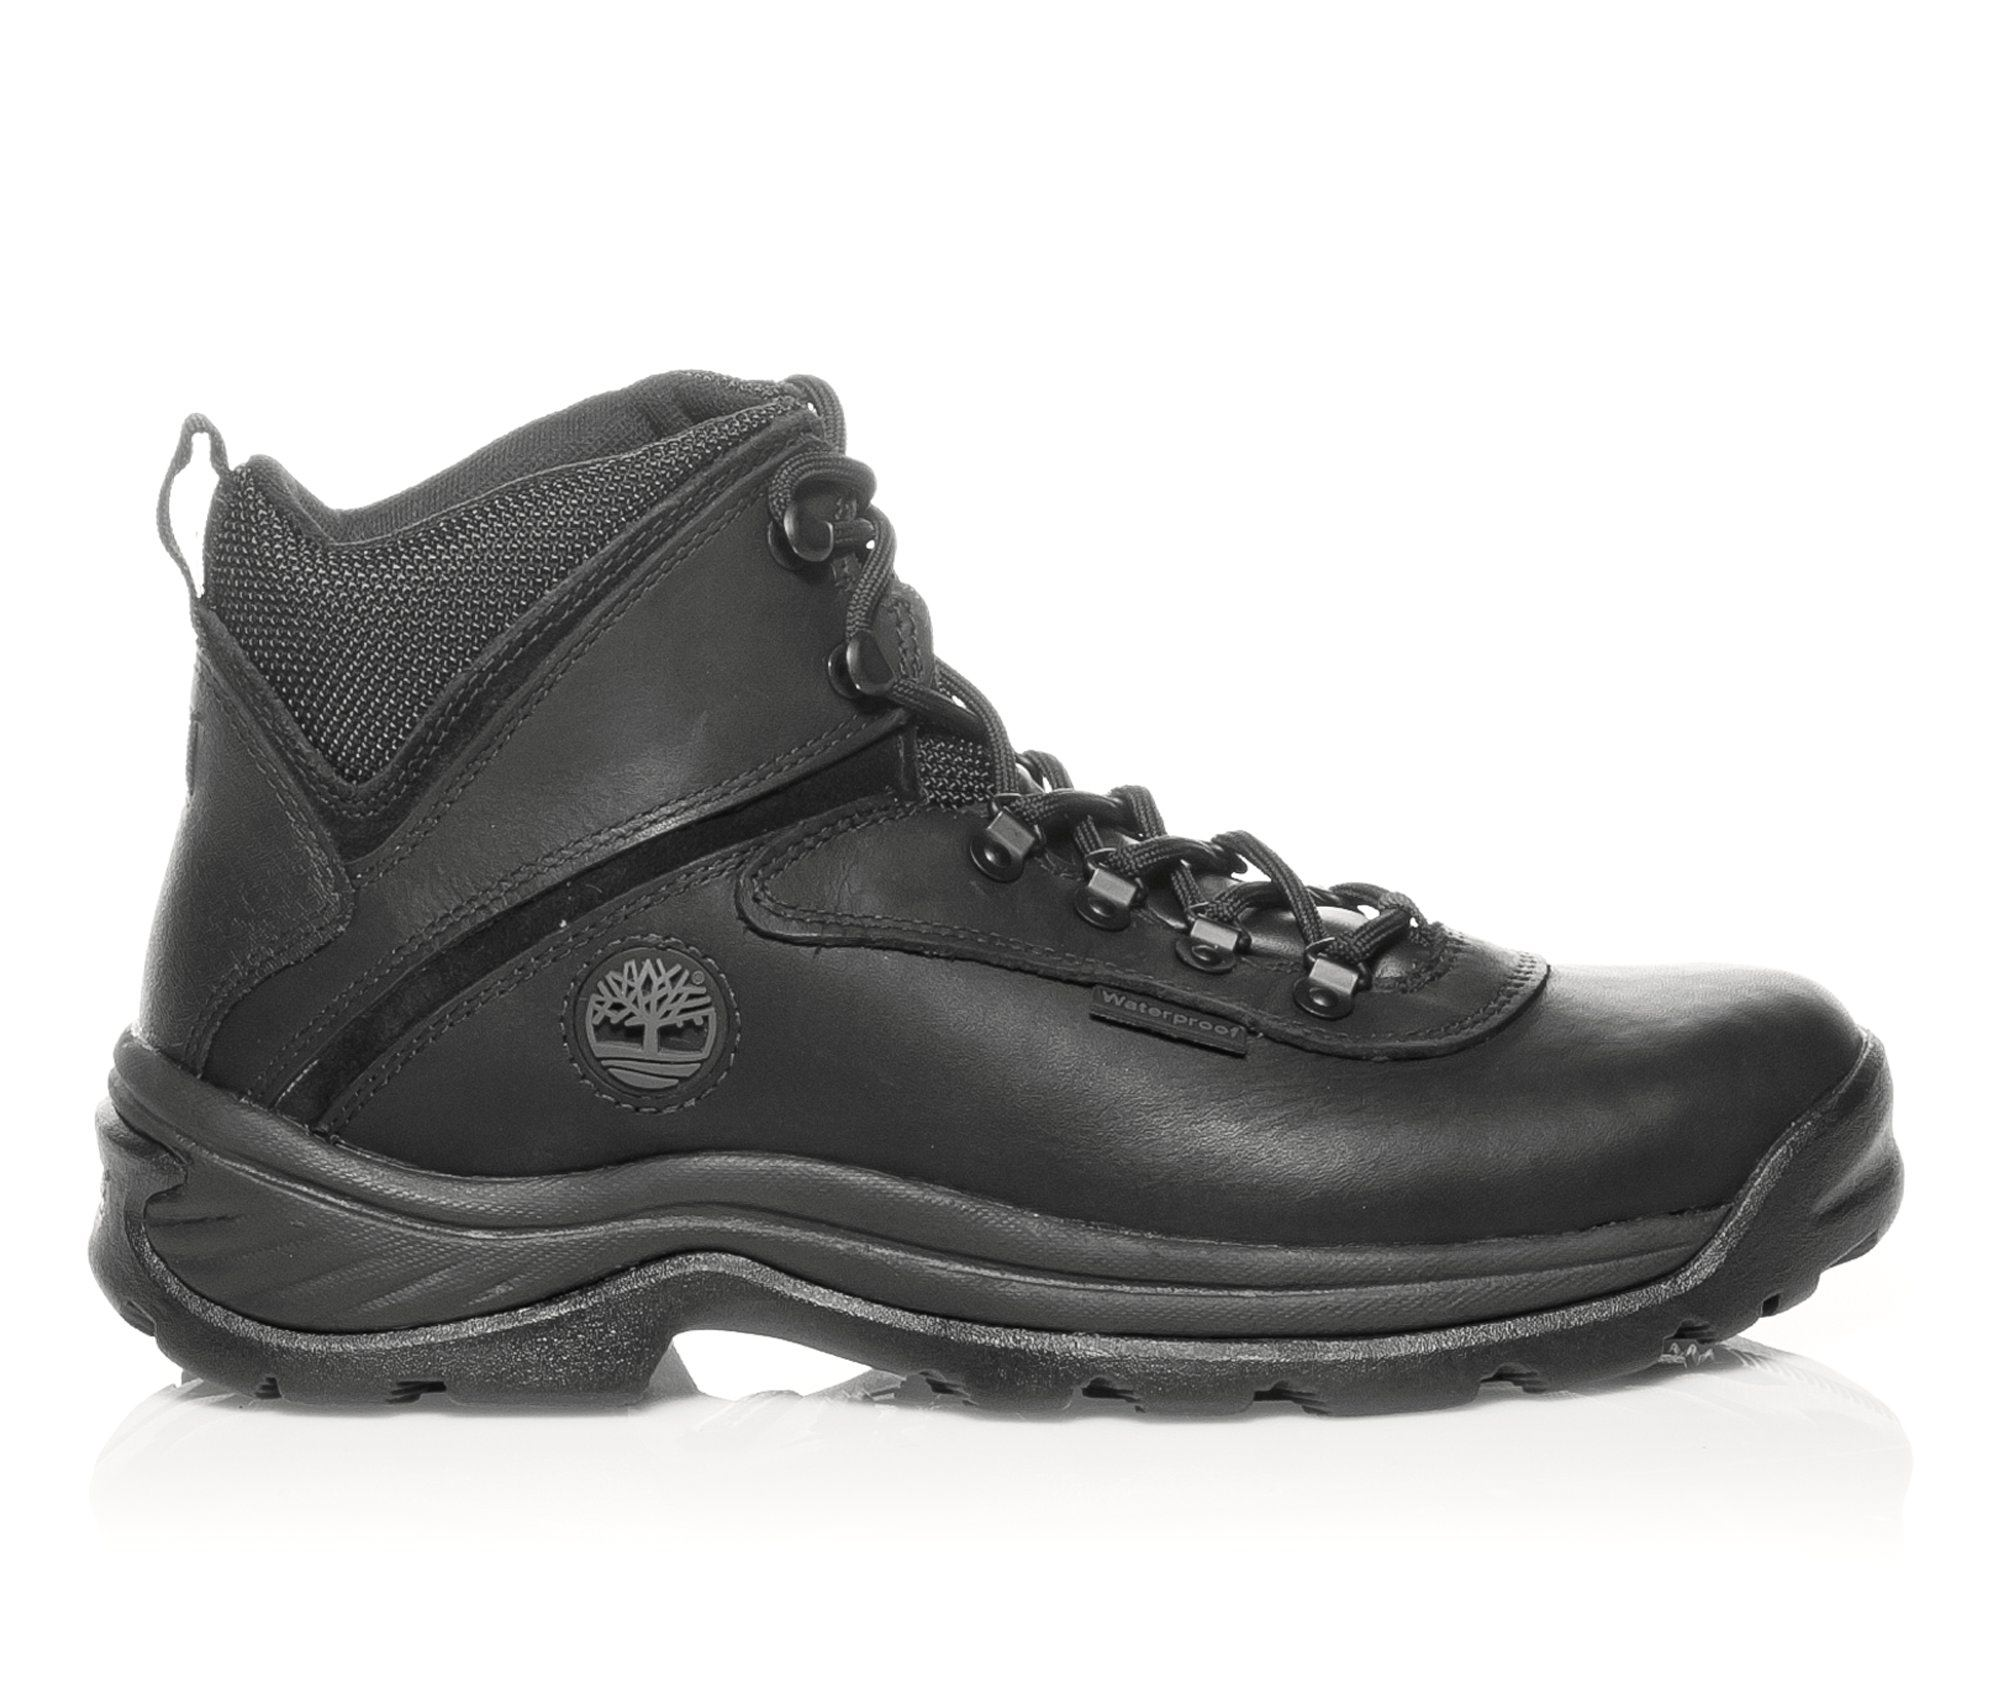 Timberland White Ledge Waterproof Men's Boots (Black Leather)